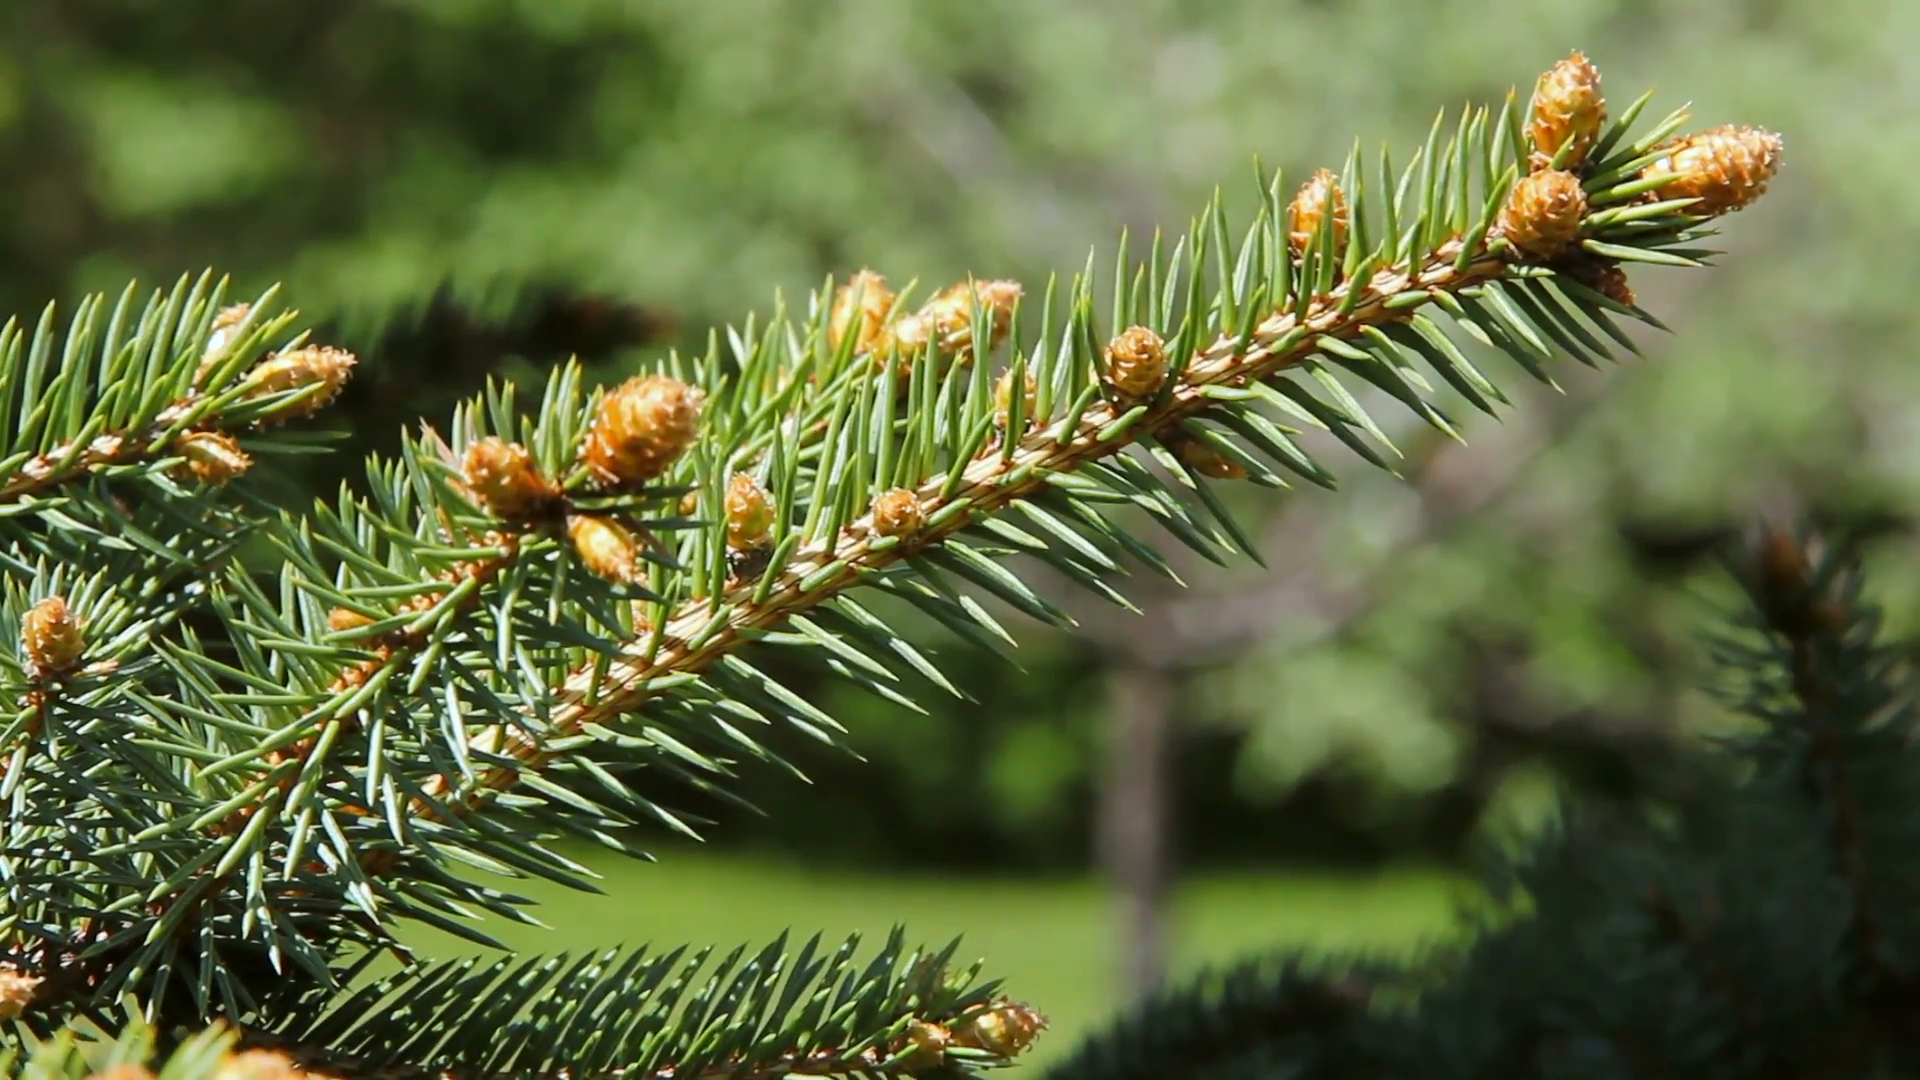 Close up of a spruce tree branch with tiny pine cones growing on it ...